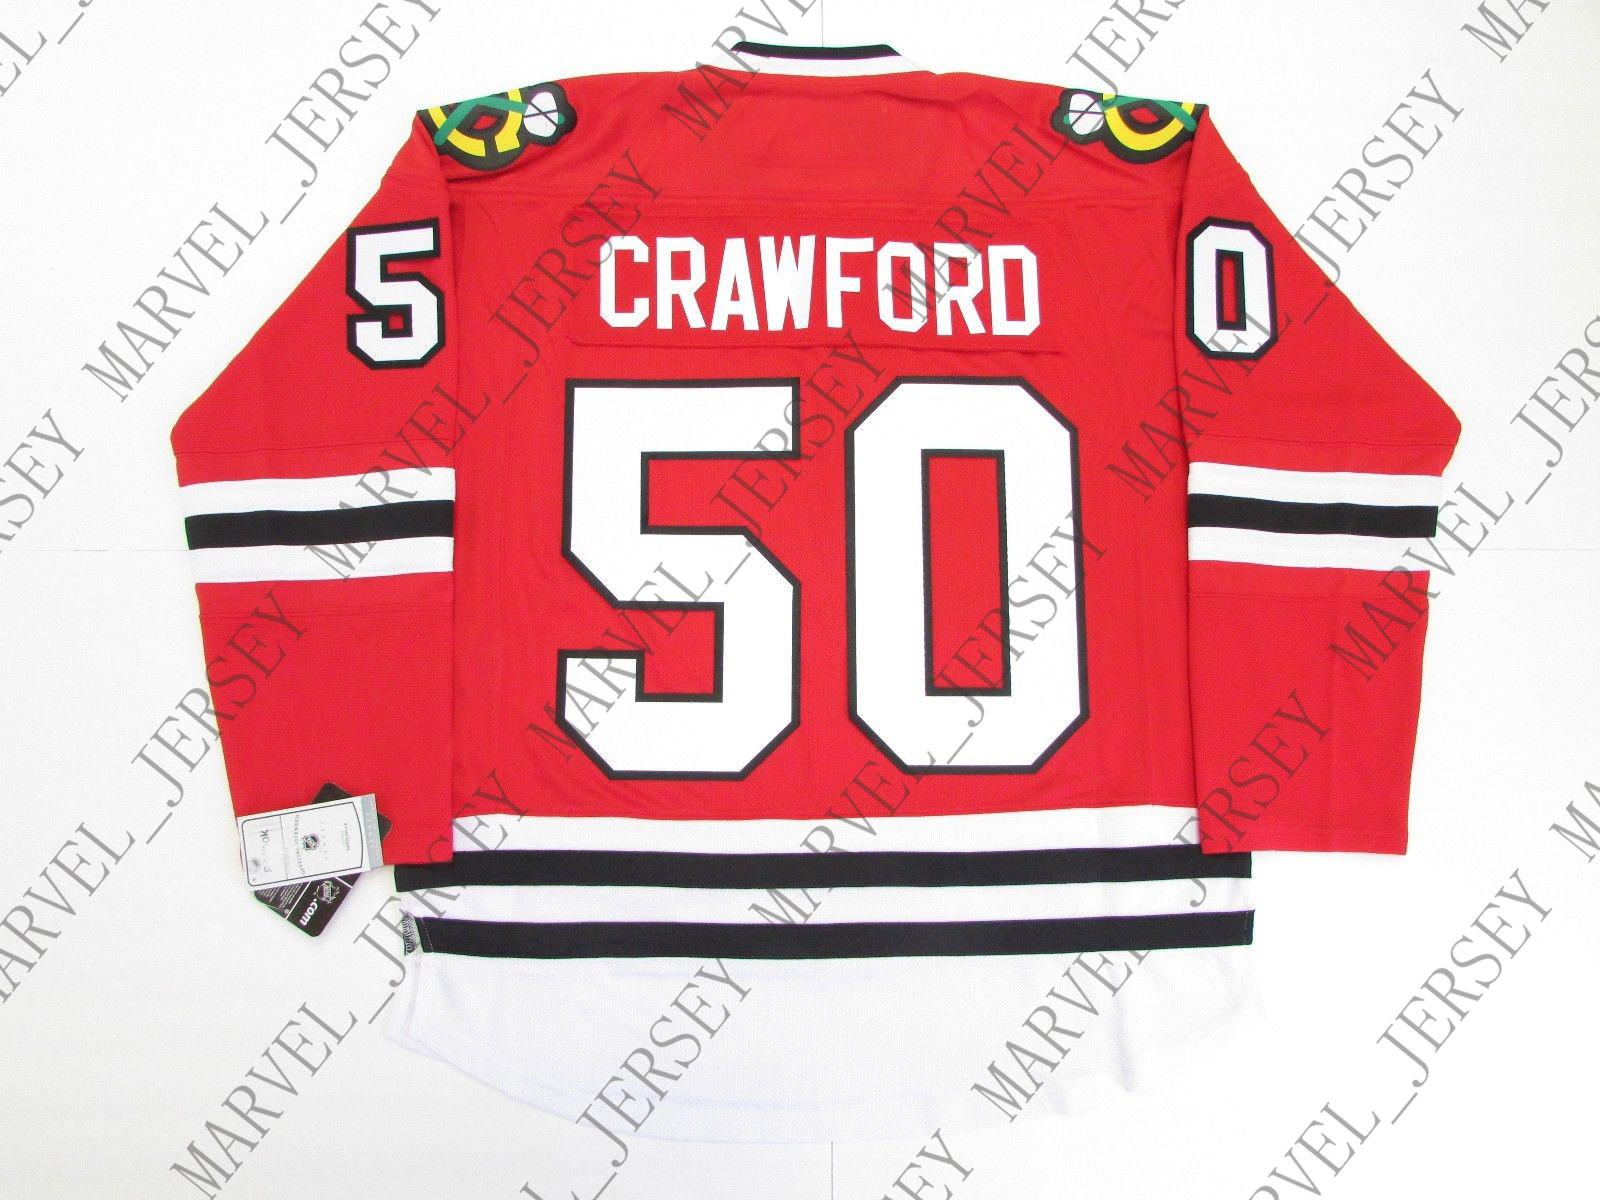 finest selection cb1ba 5435b Cheap Custom CRAWFORD CHICAGO BLACKHAWKS HOME 2015 STANLEY CUP HOCKEY  JERSEY Stitch Add Any Number Any Name Mens Hockey Jersey XS 5XL UK 2019  From ...